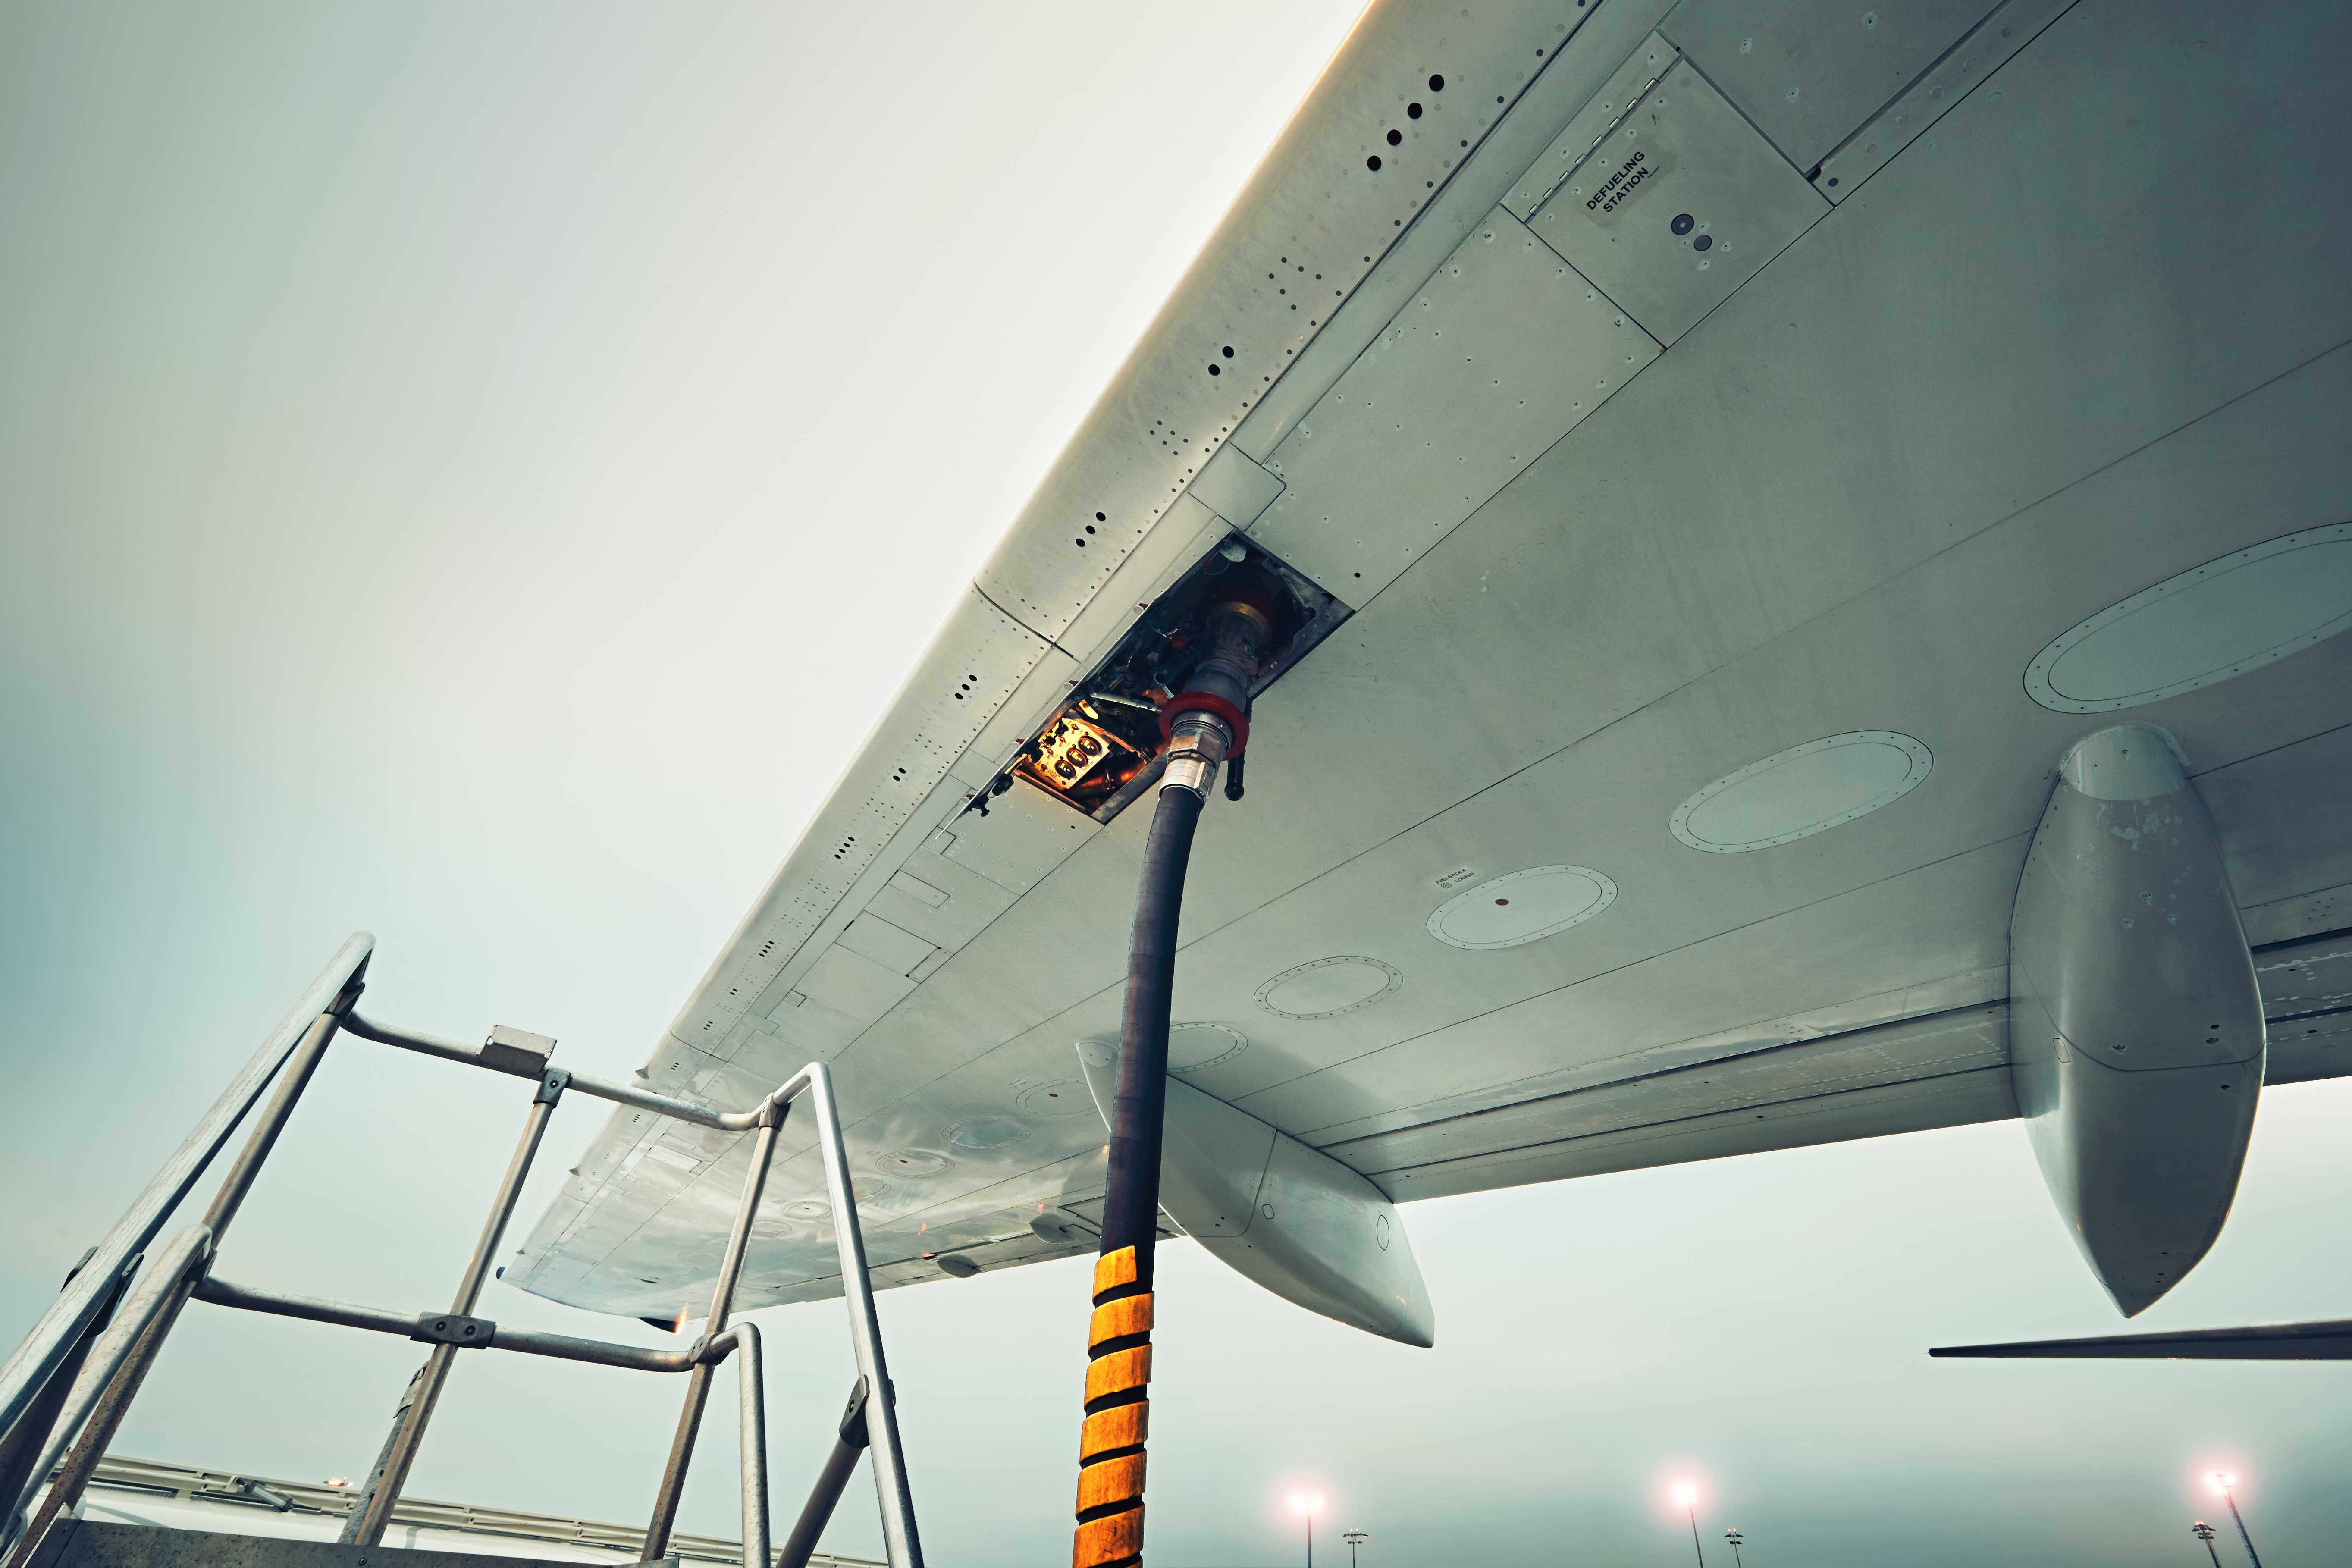 refueling-the-aircraft-PSG6T2M